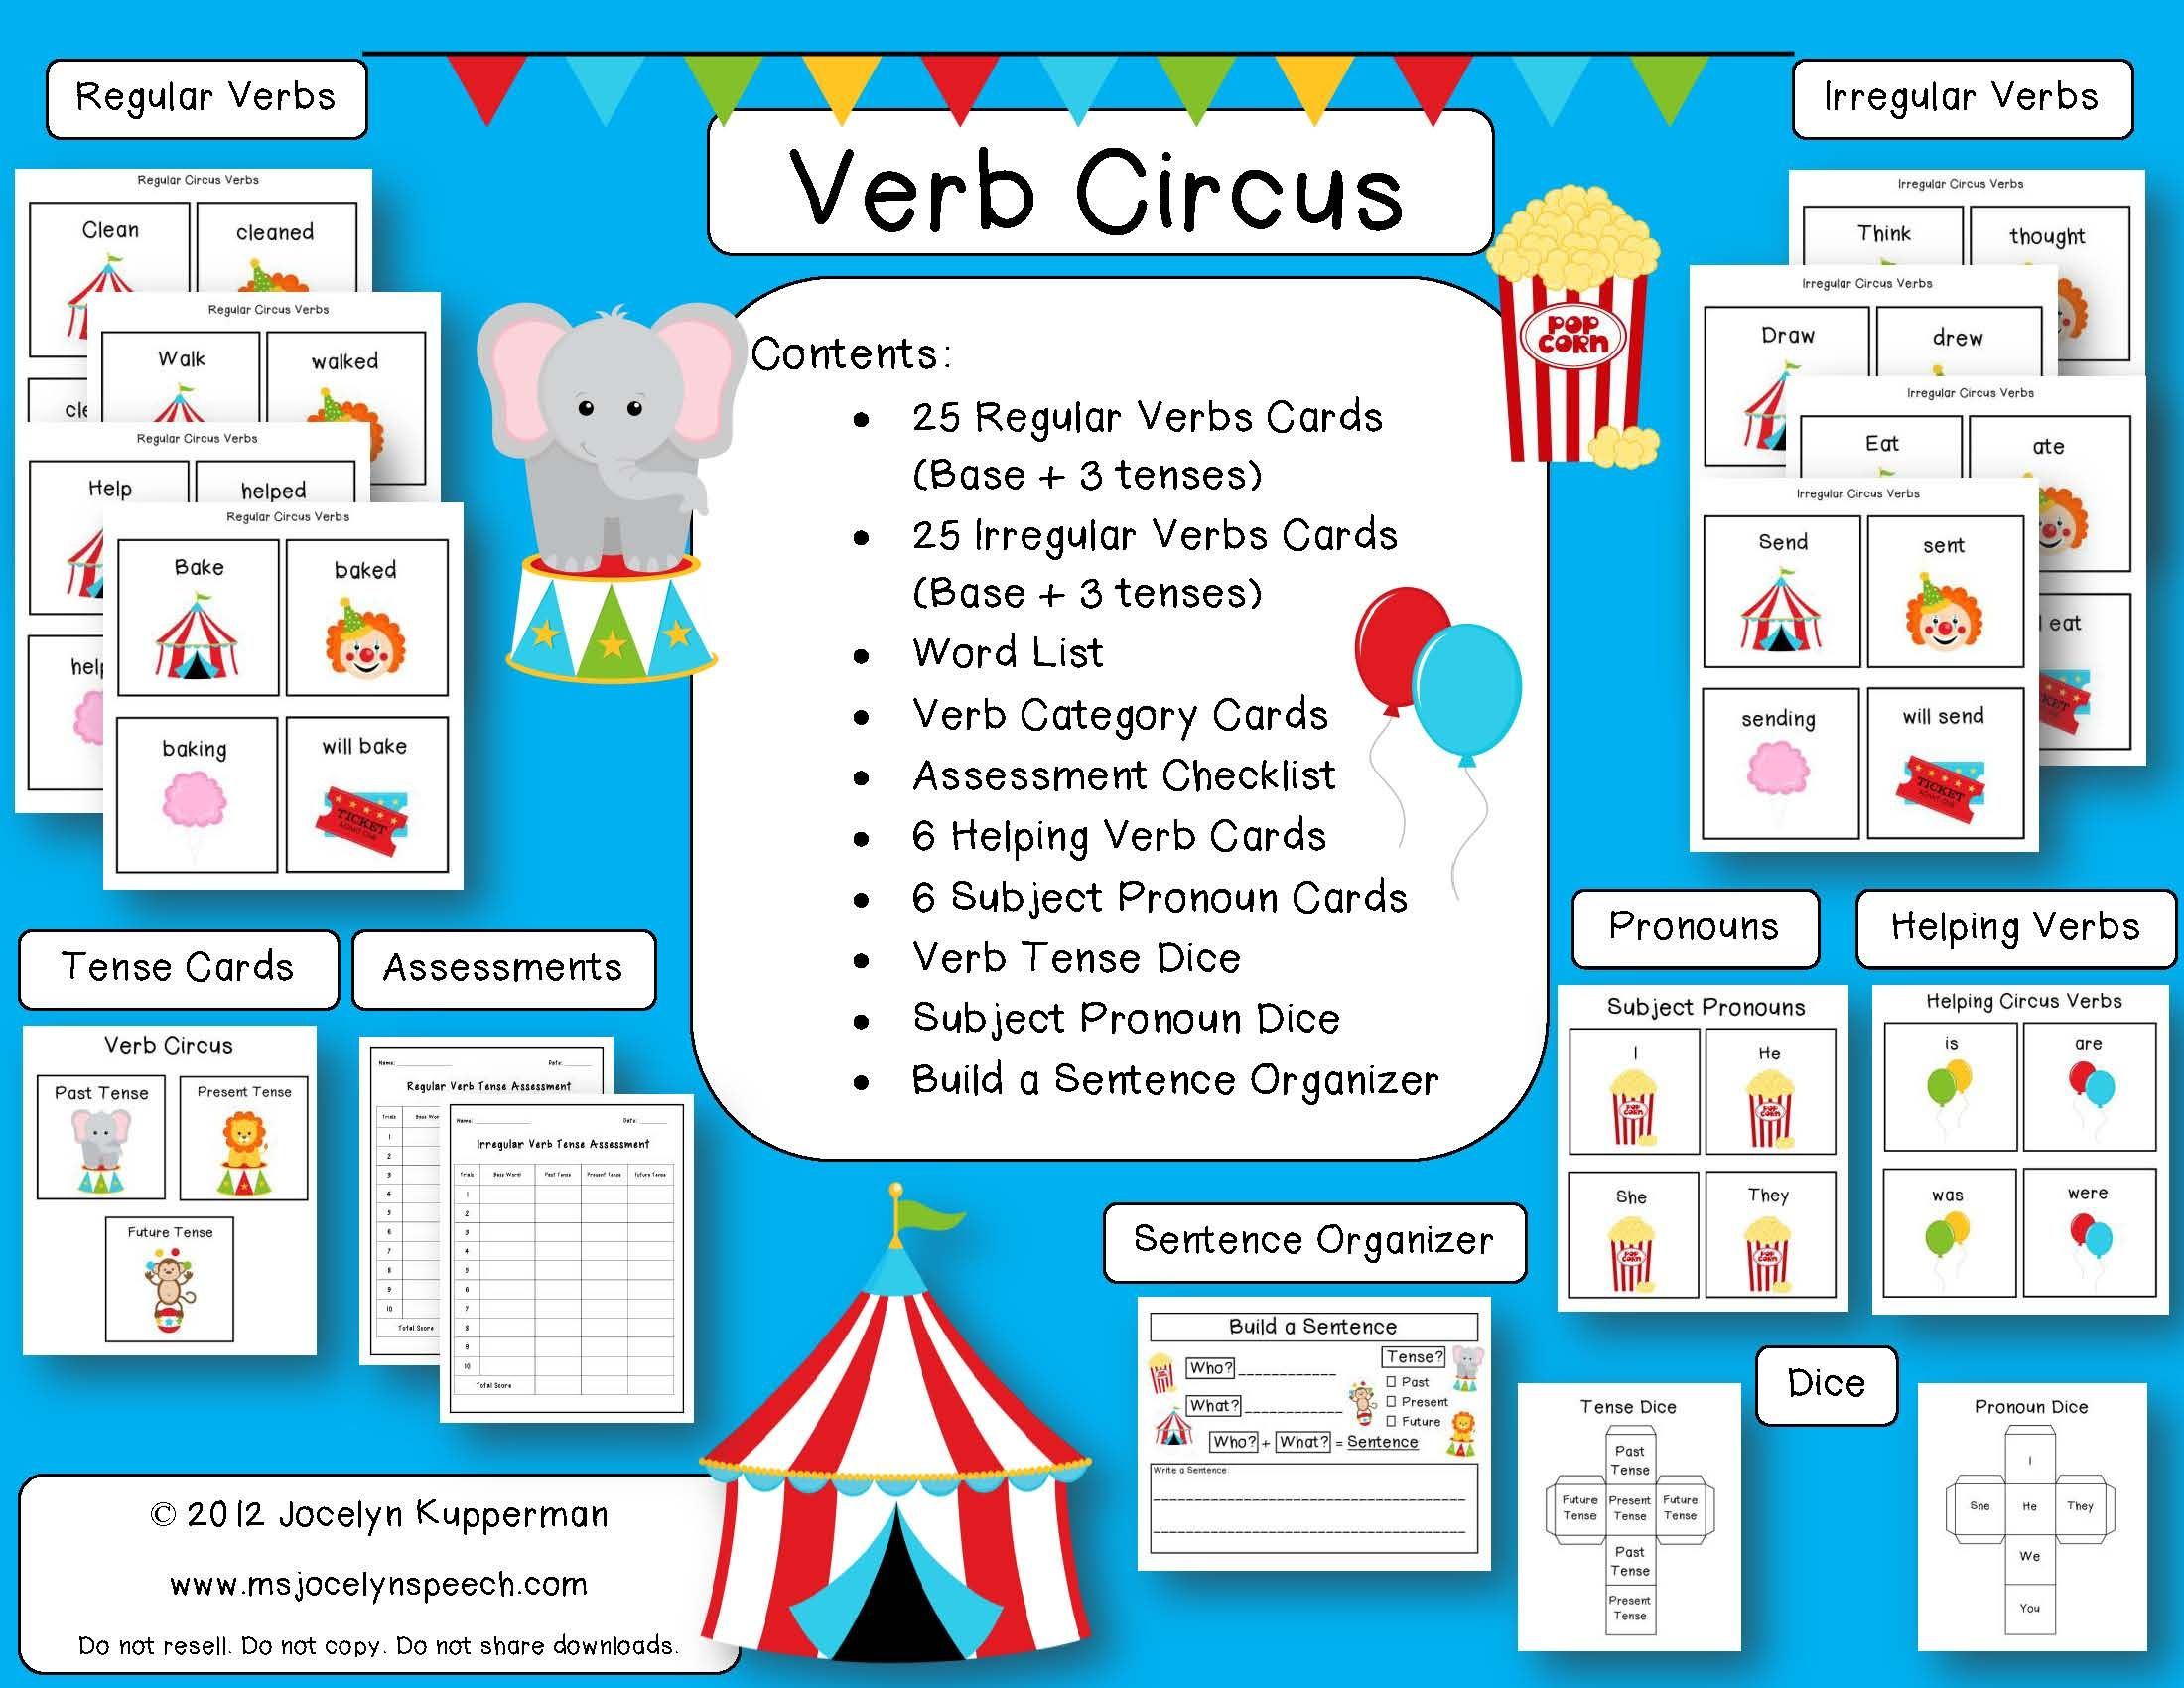 apollo 15 flight journal csm guidance u0026amp control checklist 1000 images about verbs verb tenses therapy and